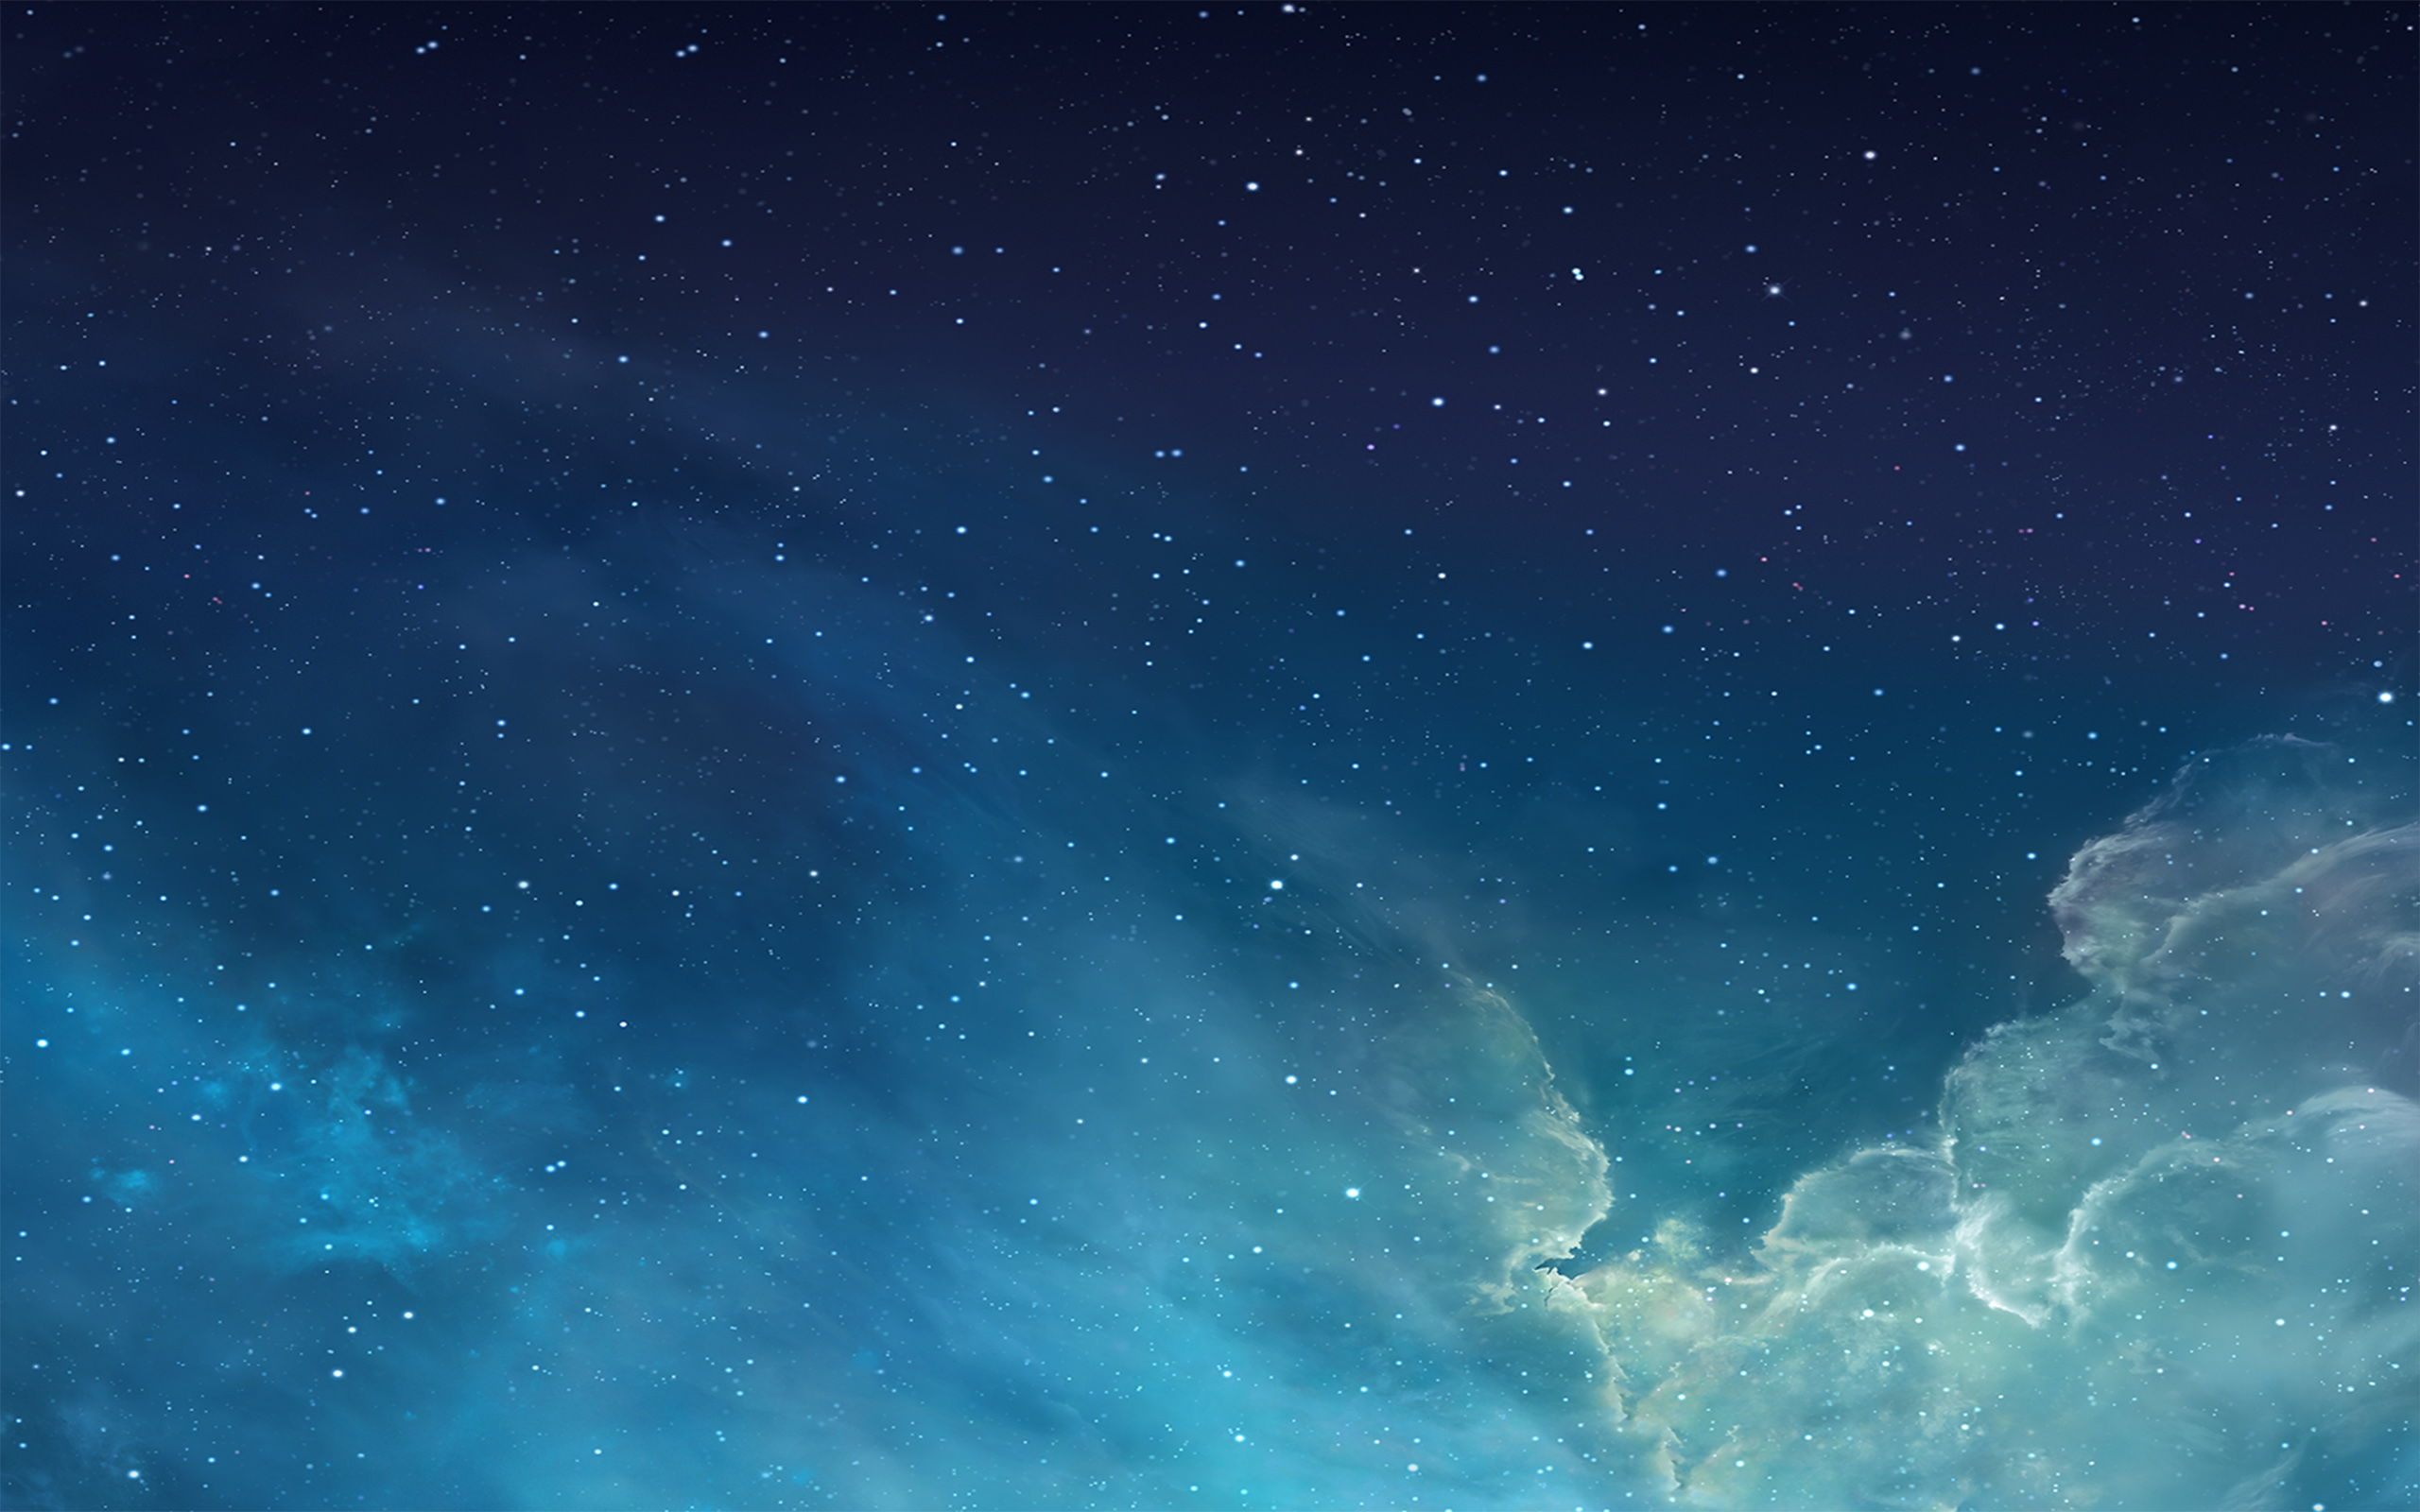 Download IOS 7 Wallpapers